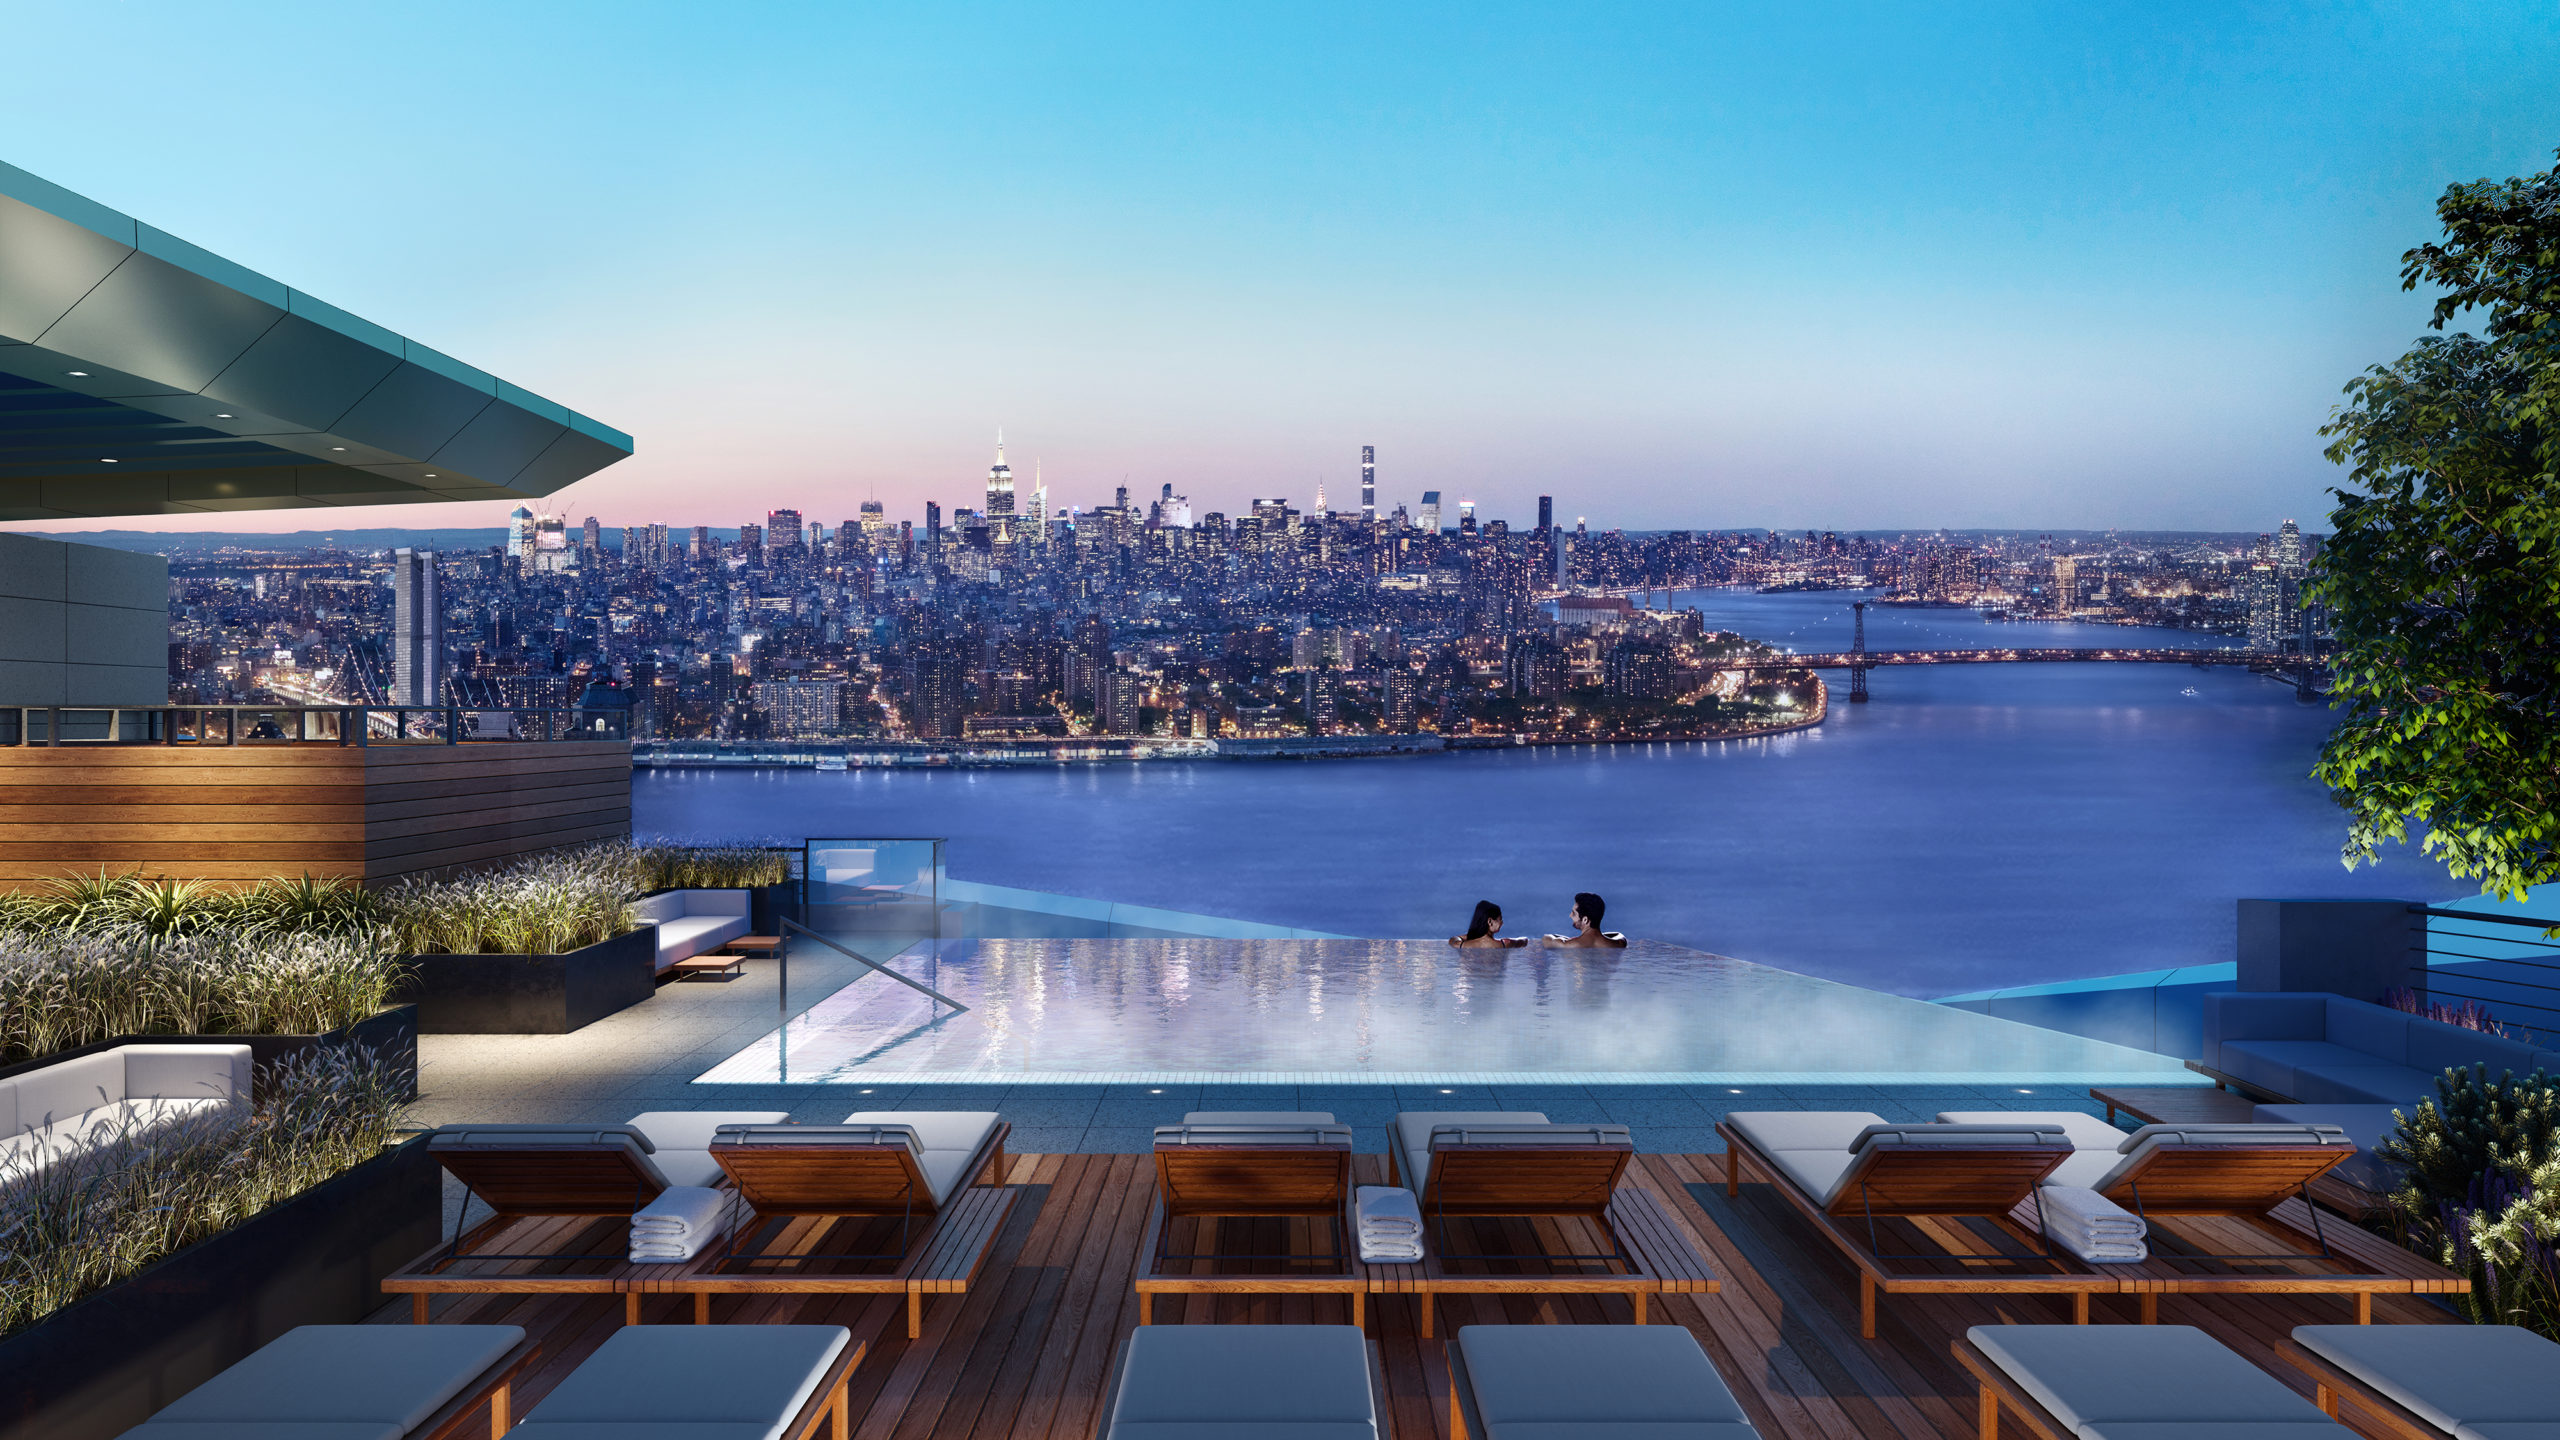 Exterior view of Brooklyn Point condominiums outdoor pool with view of river and Brooklyn buildings.